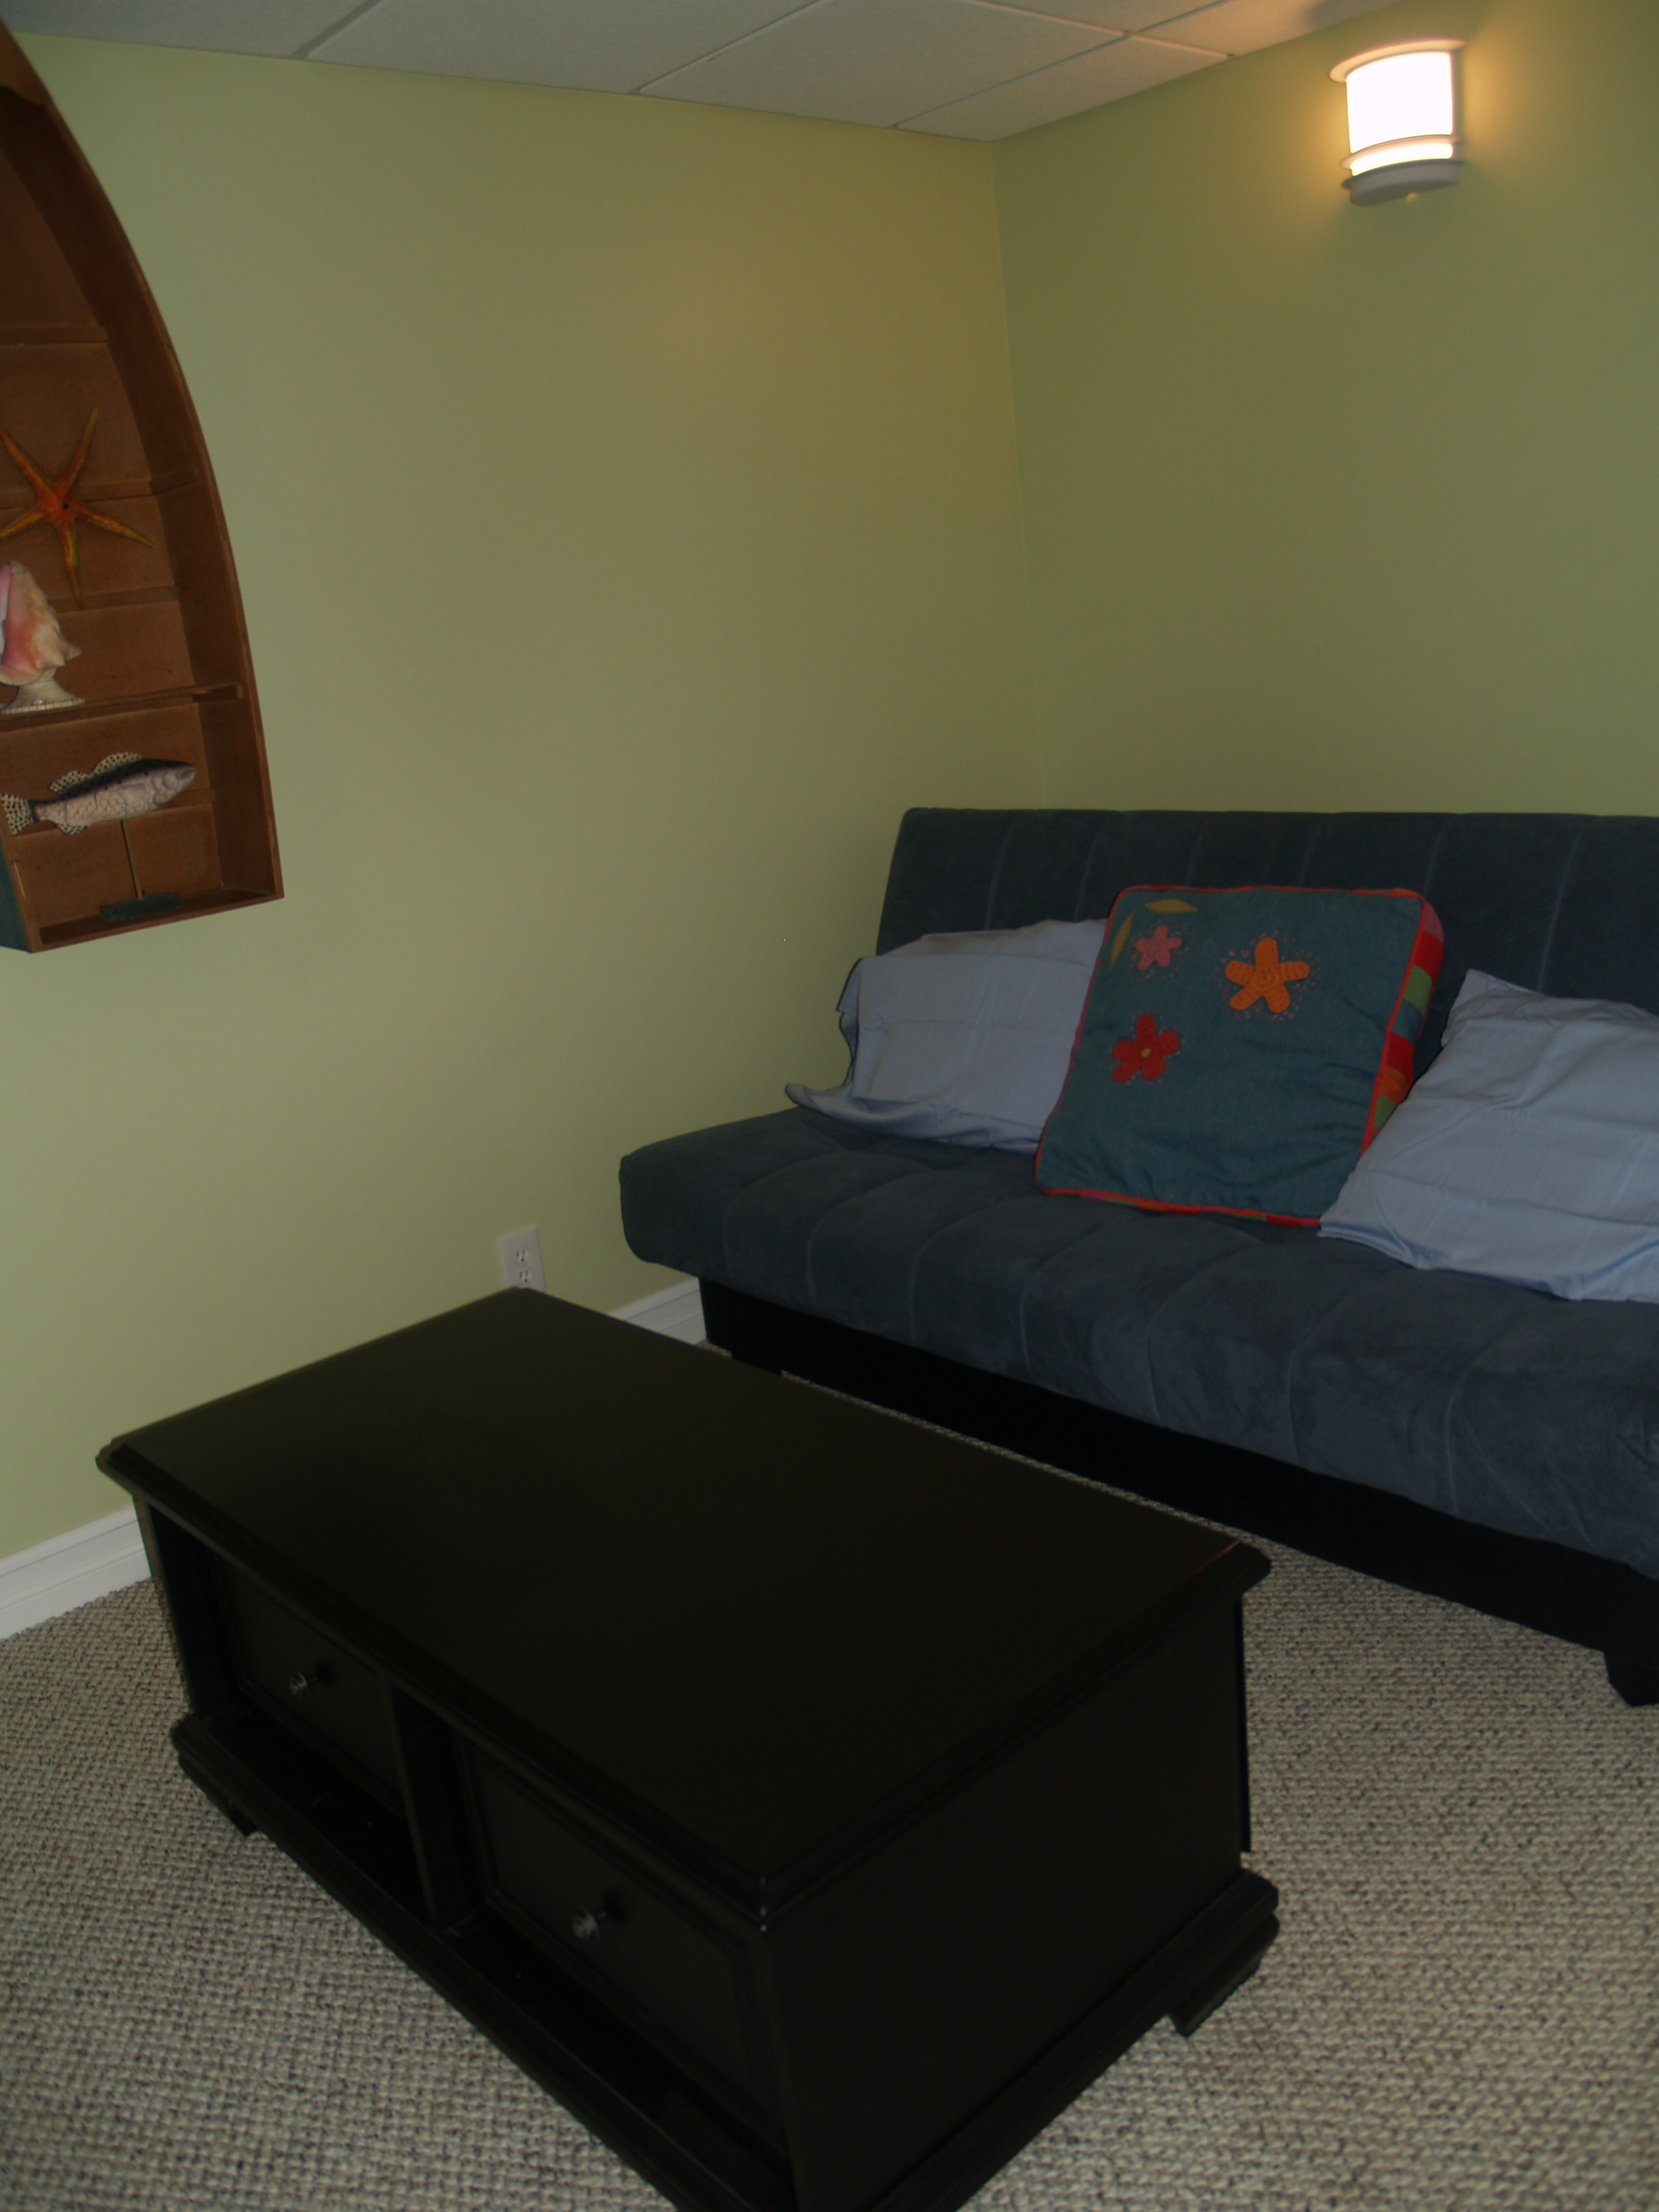 Room with Futon and Flat Screen TV